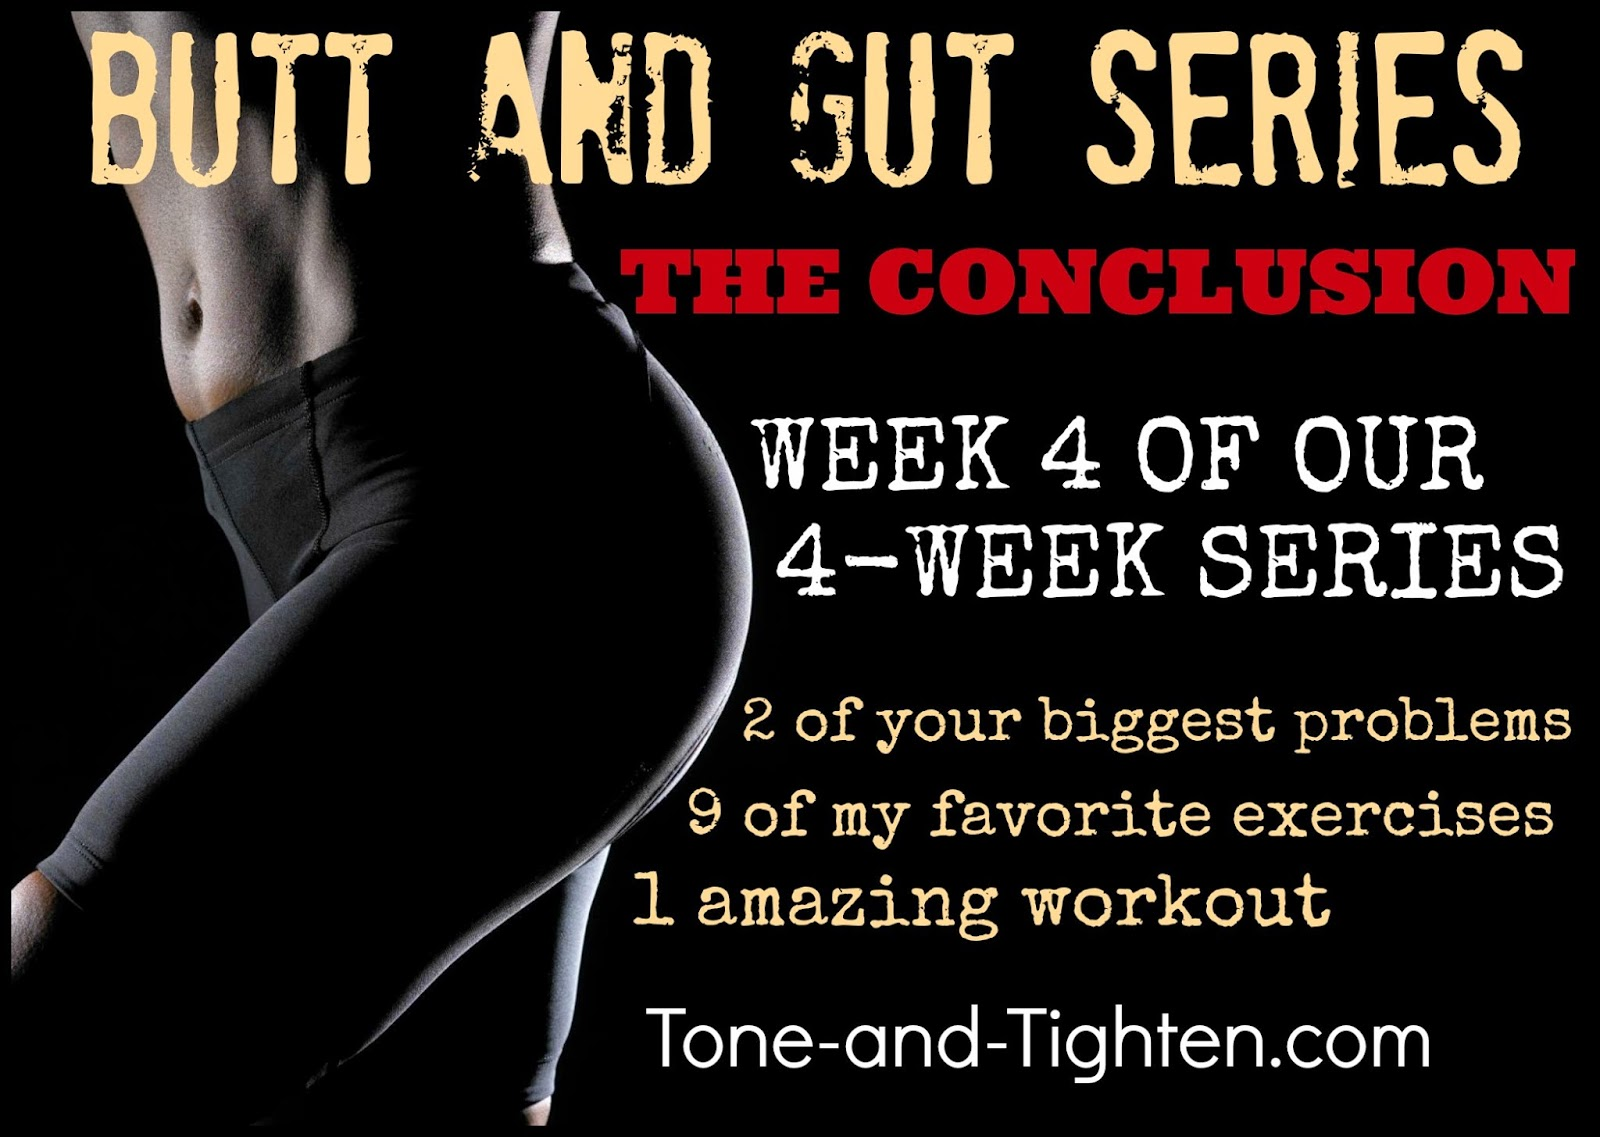 https://tone-and-tighten.com/2013/11/butt-and-gut-workout-series-week-4.html